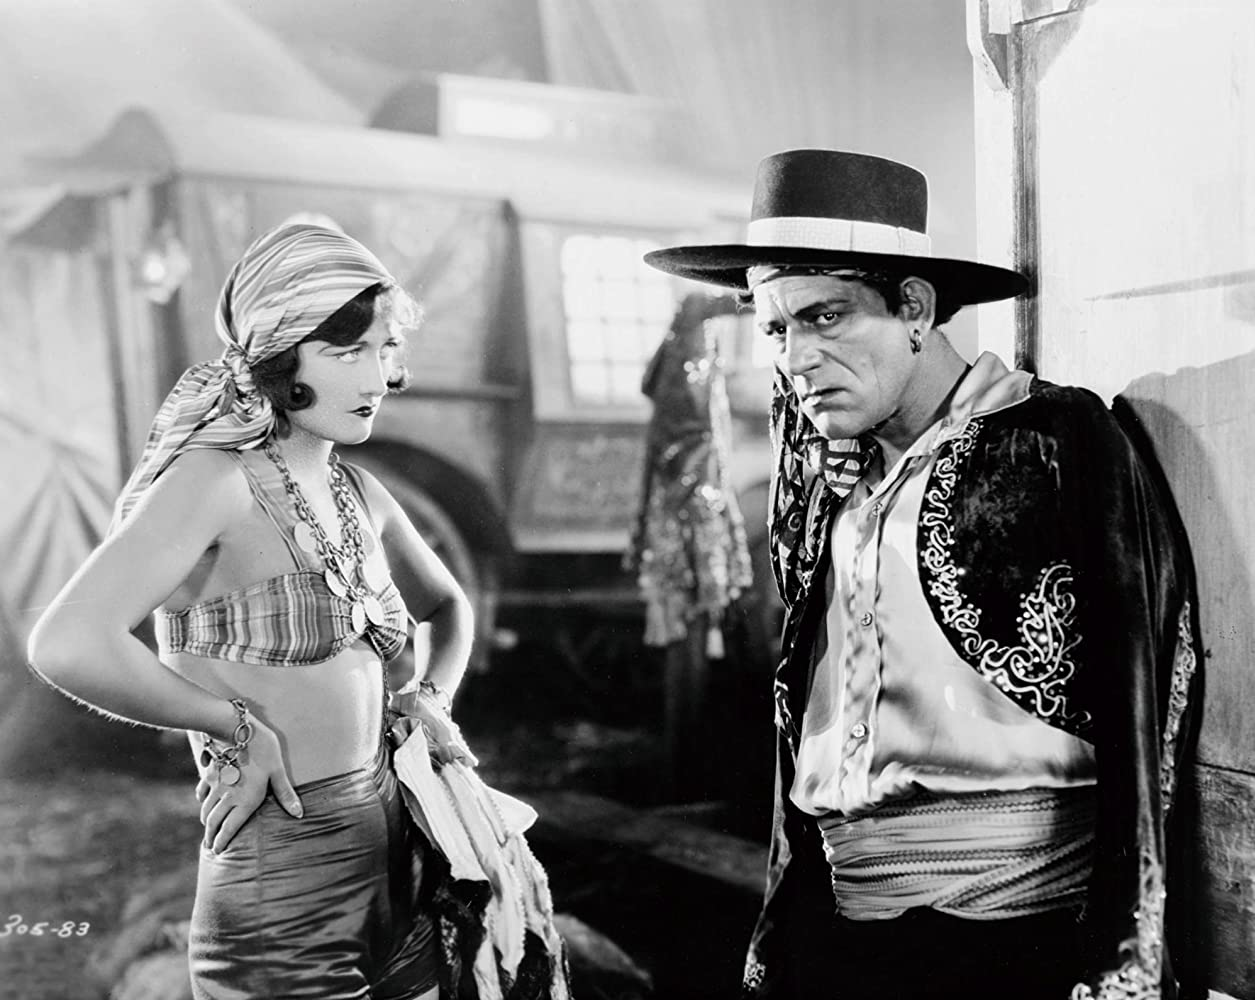 Joan Crawford and Lon Chaney in The Unknown (1927)